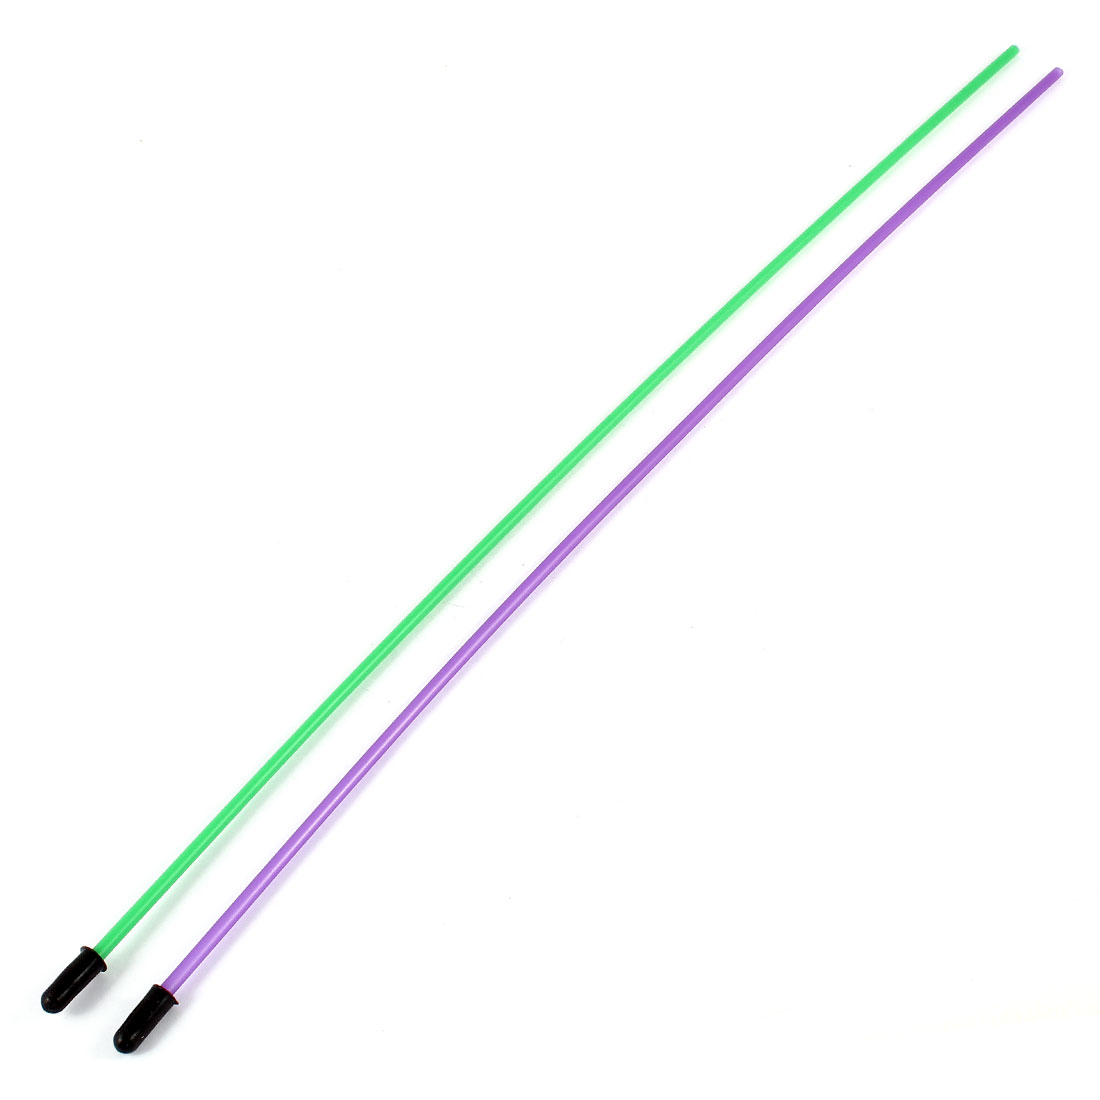 2Pcs 1.5mm x380mm Green Purple Plastic Antenna Pipe Tube Protectors Receiver Arial Aerial for Remote Control Model Car